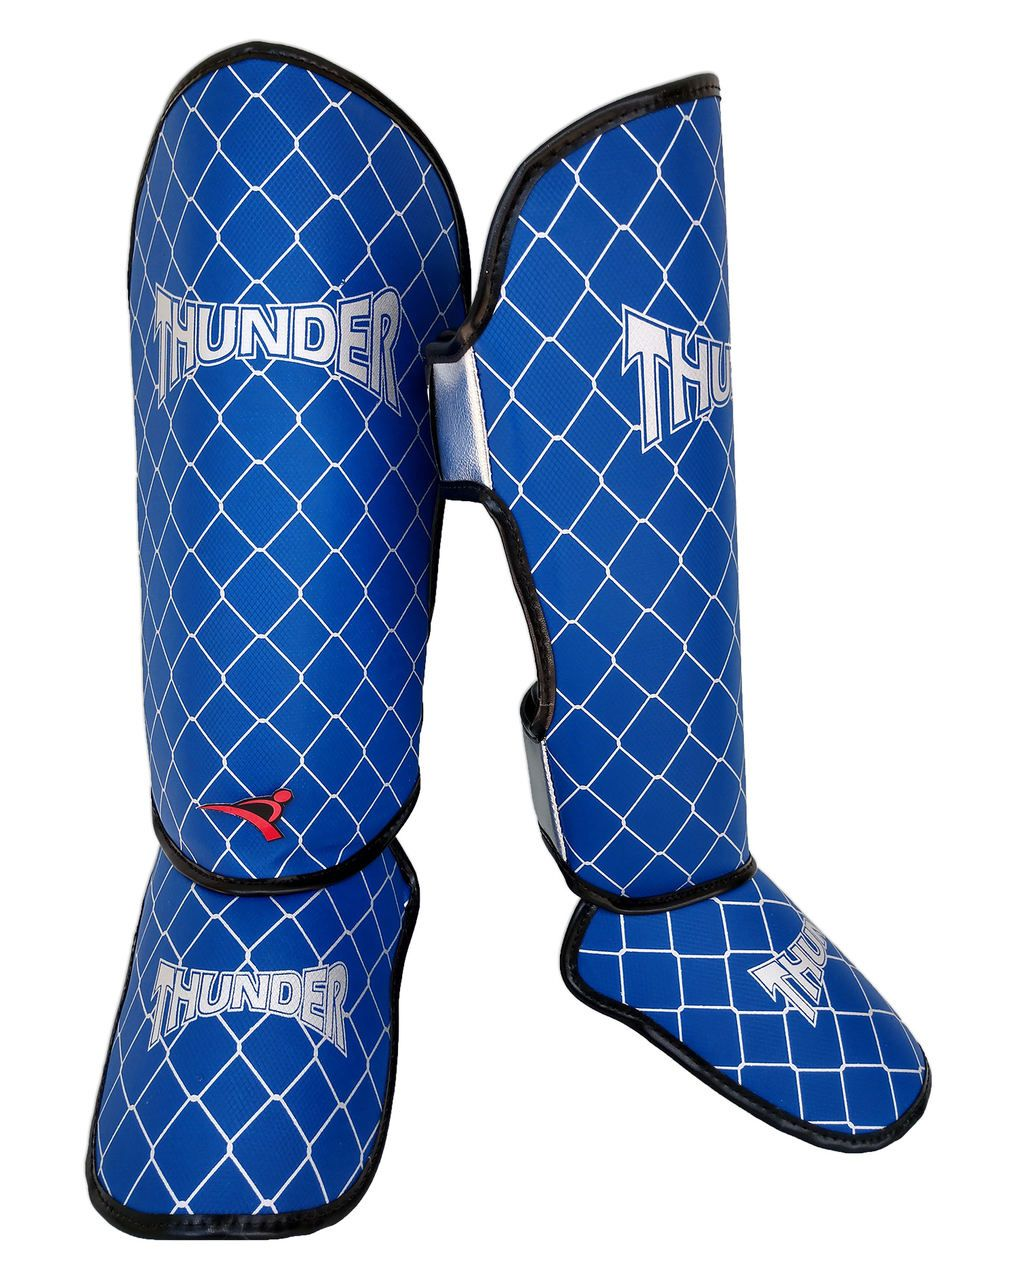 Caneleira Tradicional Muay Thai MMA Azul 20mm - Thunder Fight  - PRALUTA SHOP